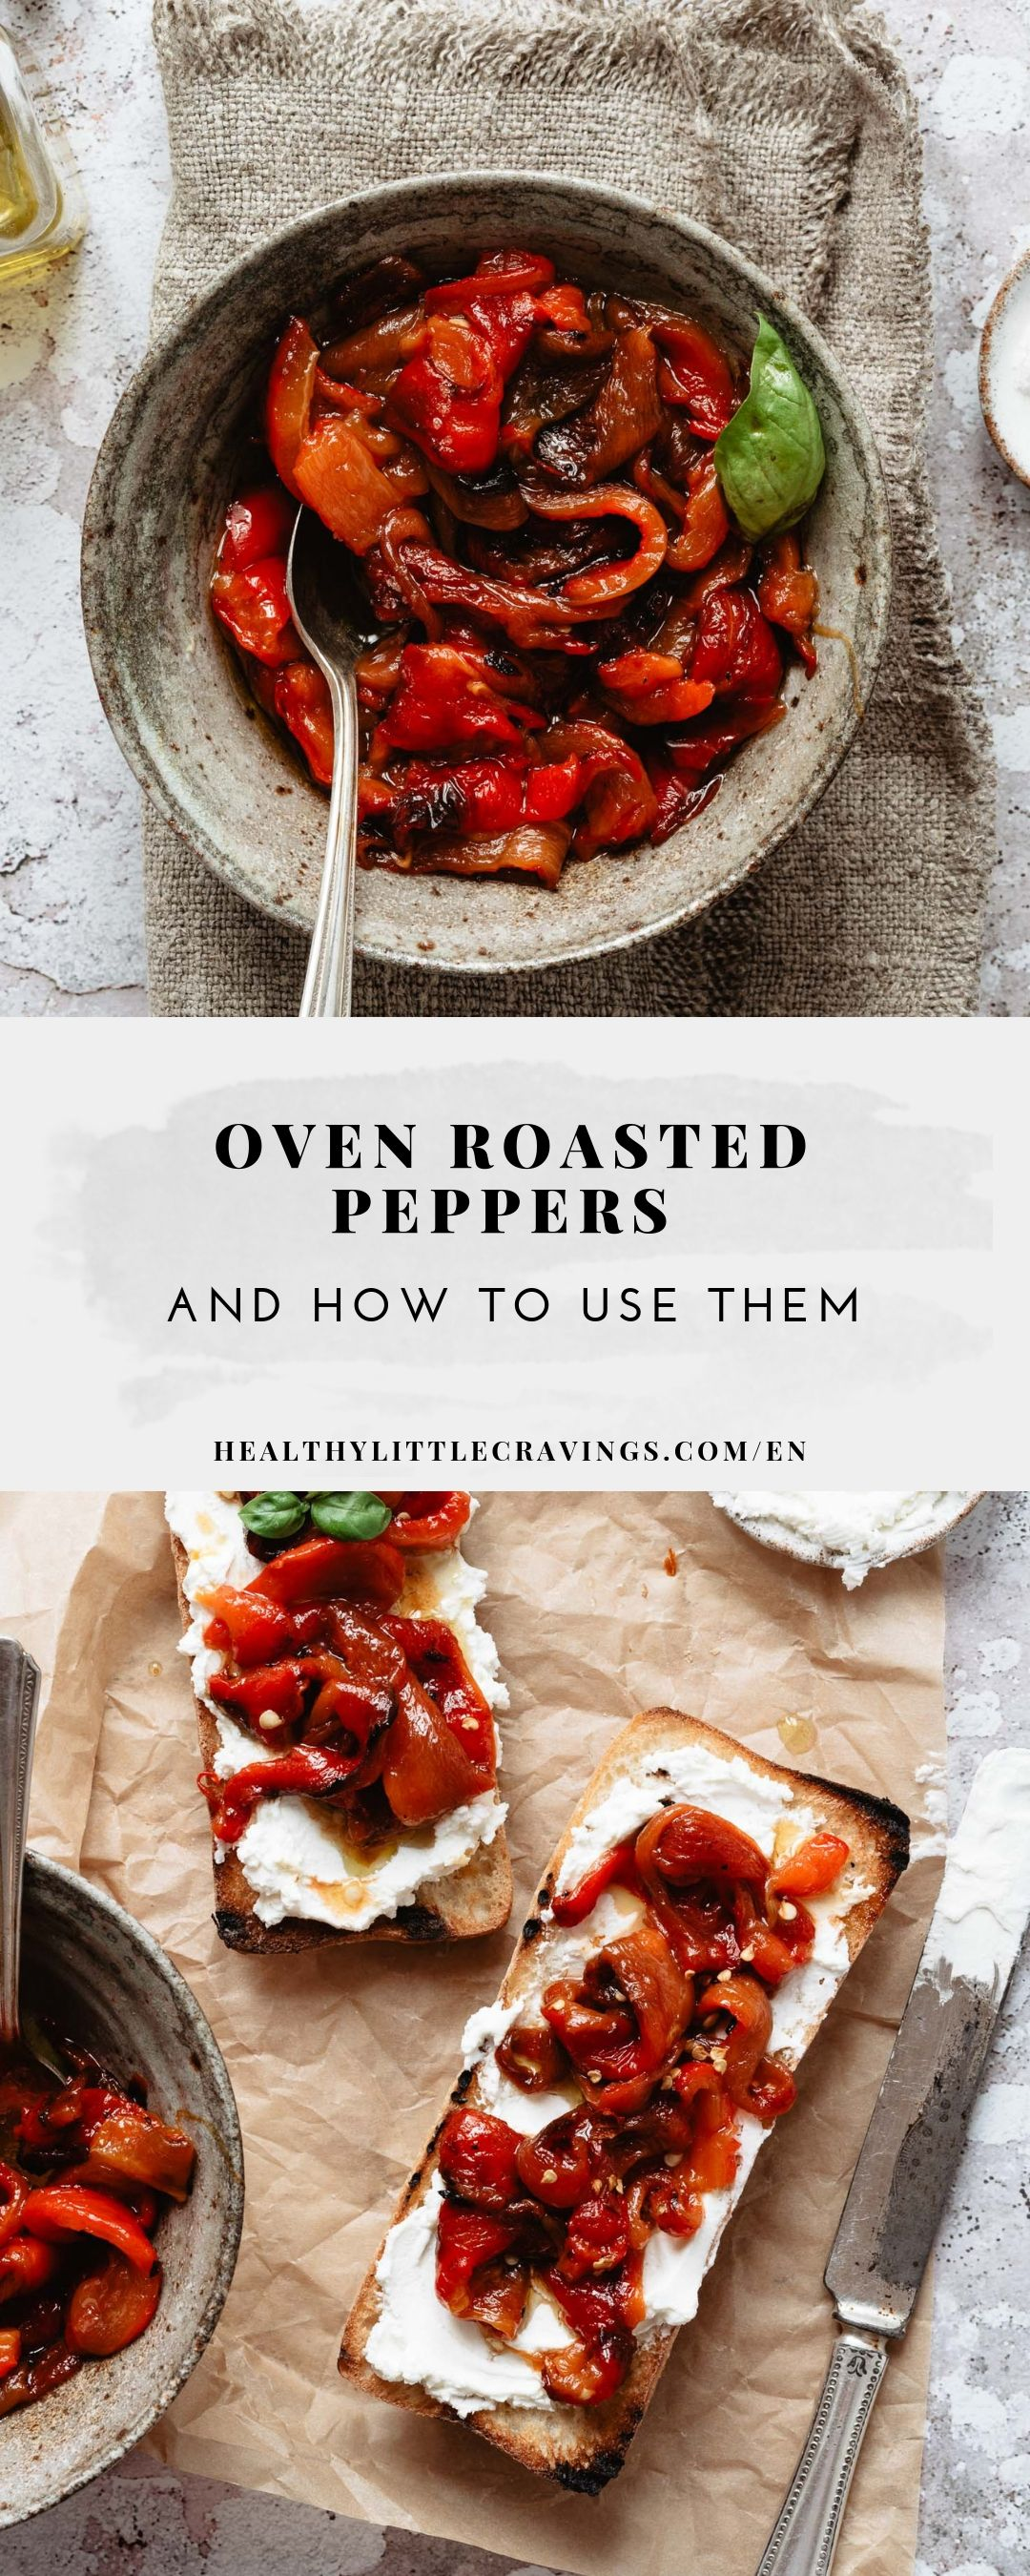 HOW TO MAKE OVEN ROASTED PEPPERS + CREAMY CHEESE AND PEPPERS TOAST